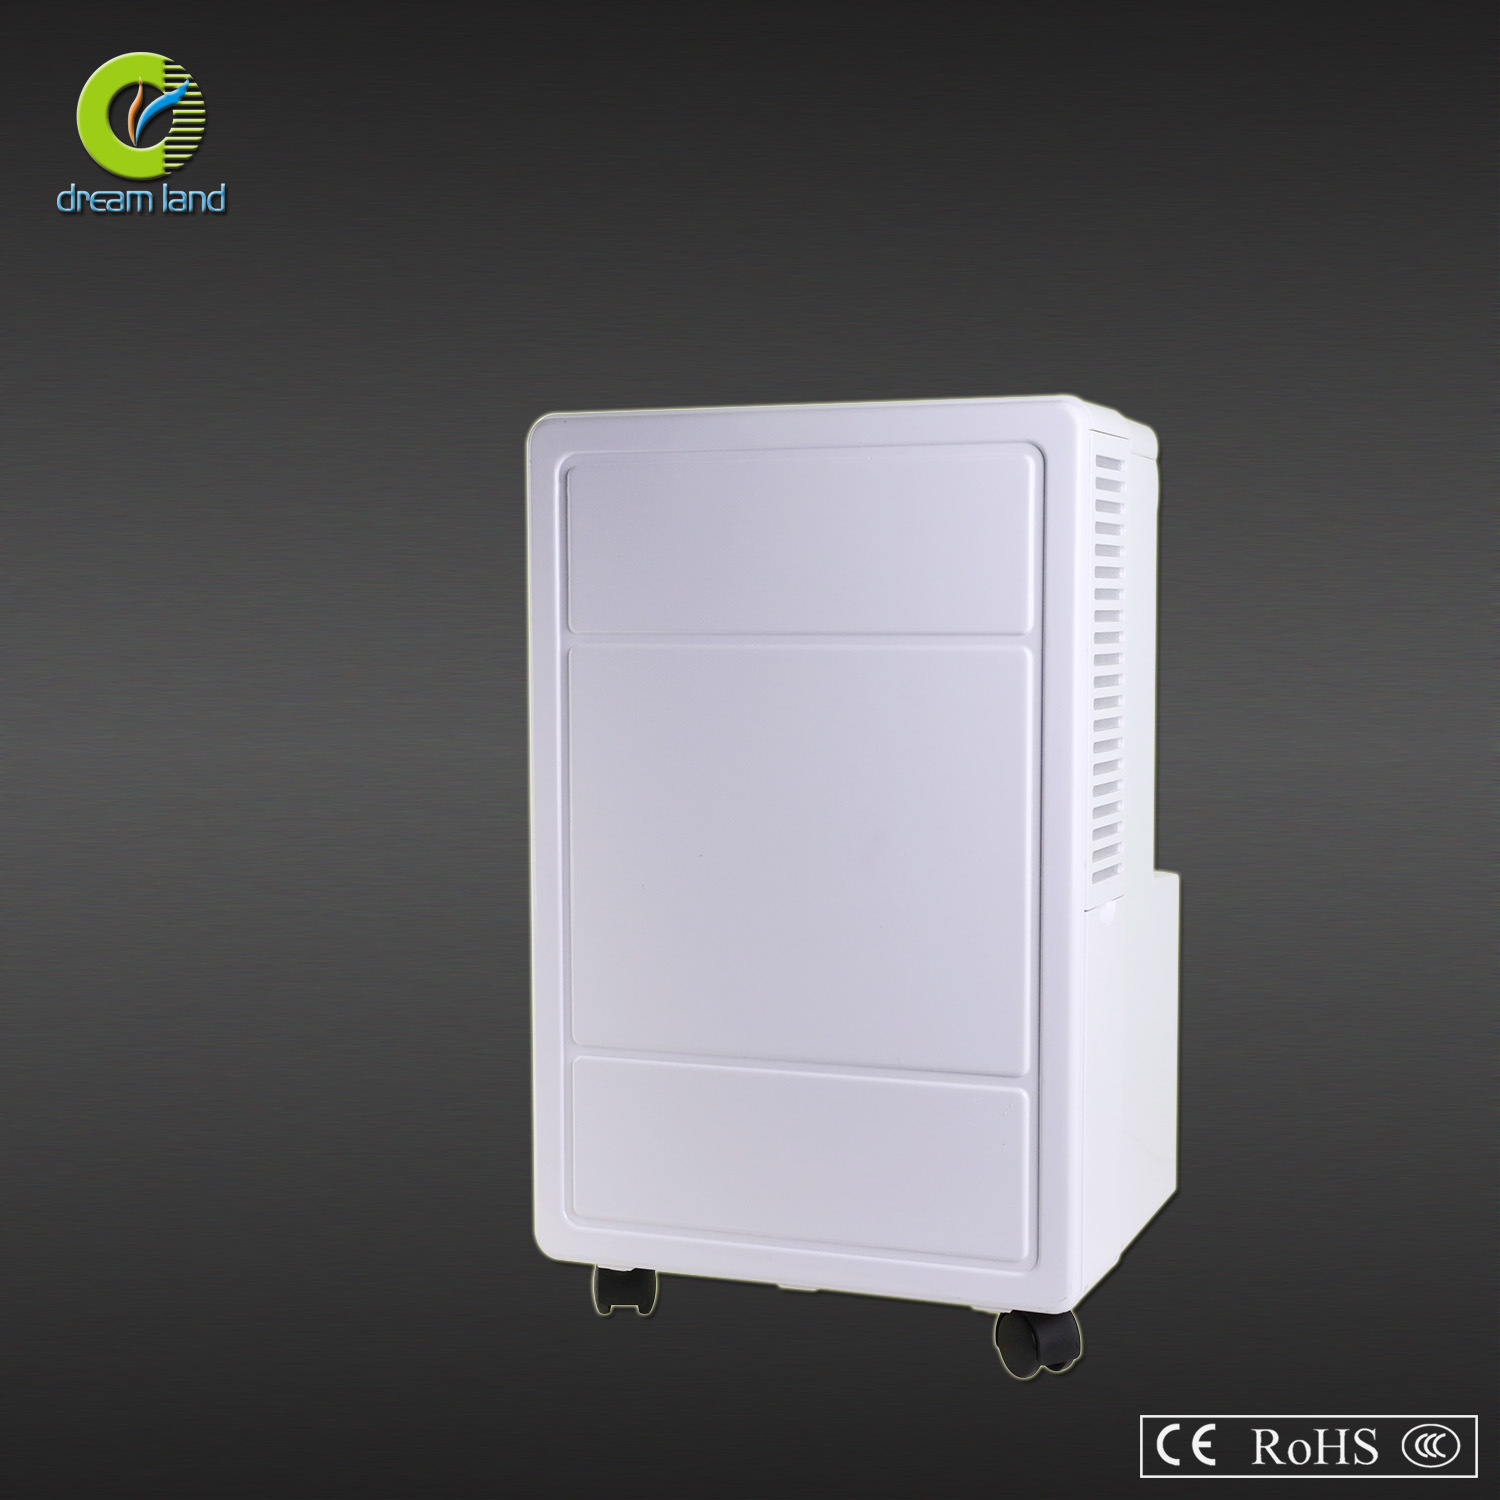 China energy saving air dehumidifier for small space cldd 10e photos pictures made in - Small space dehumidifier bags set ...